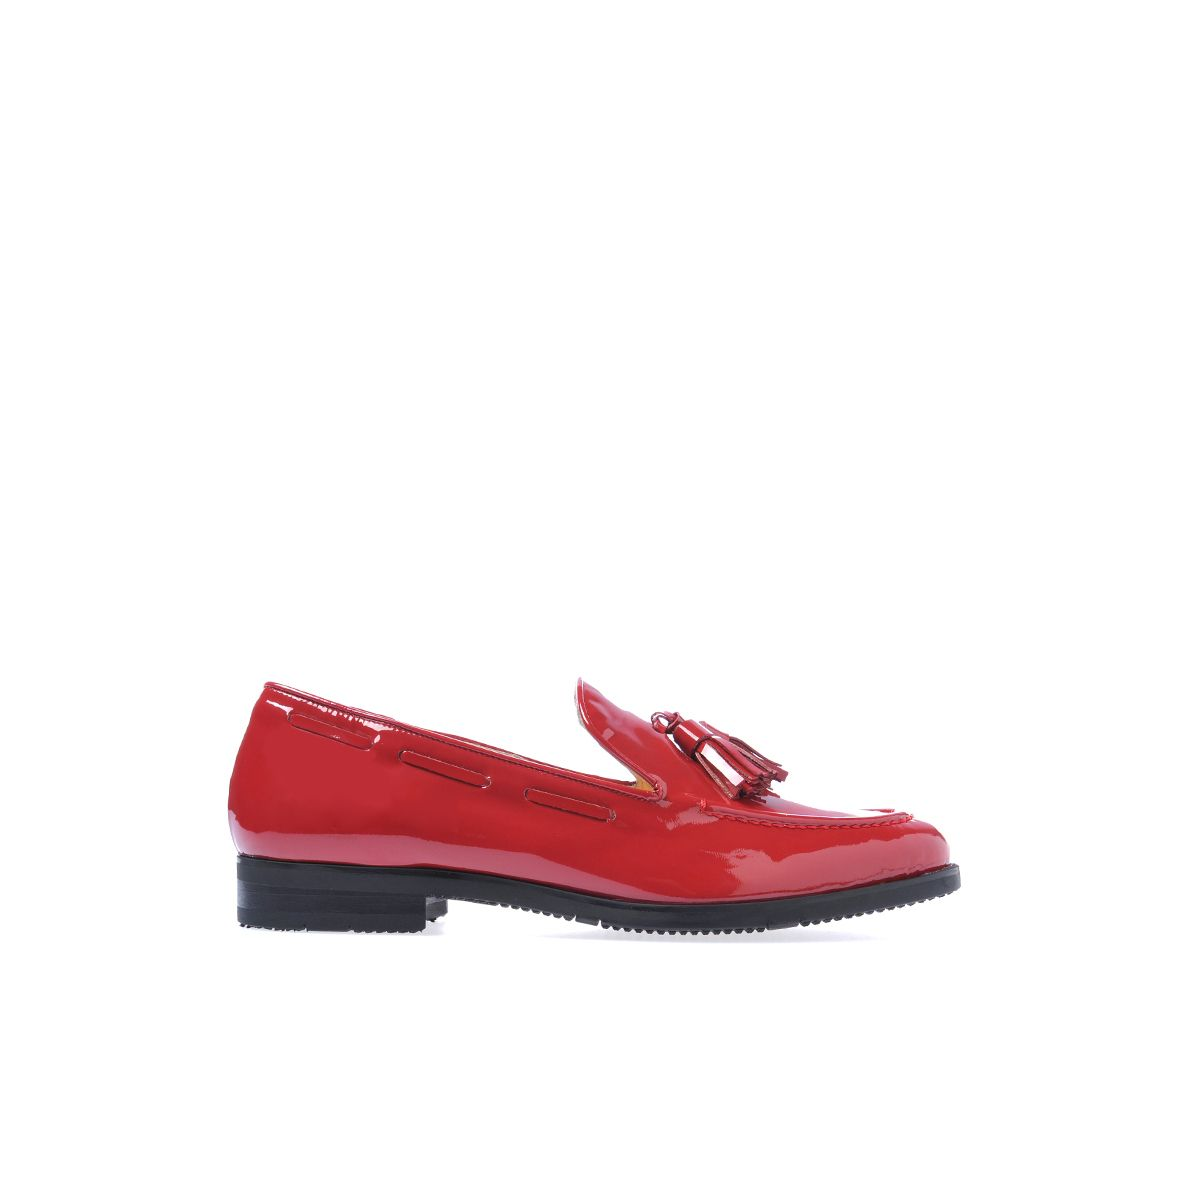 Baldinini Trend Collection: Loafers in